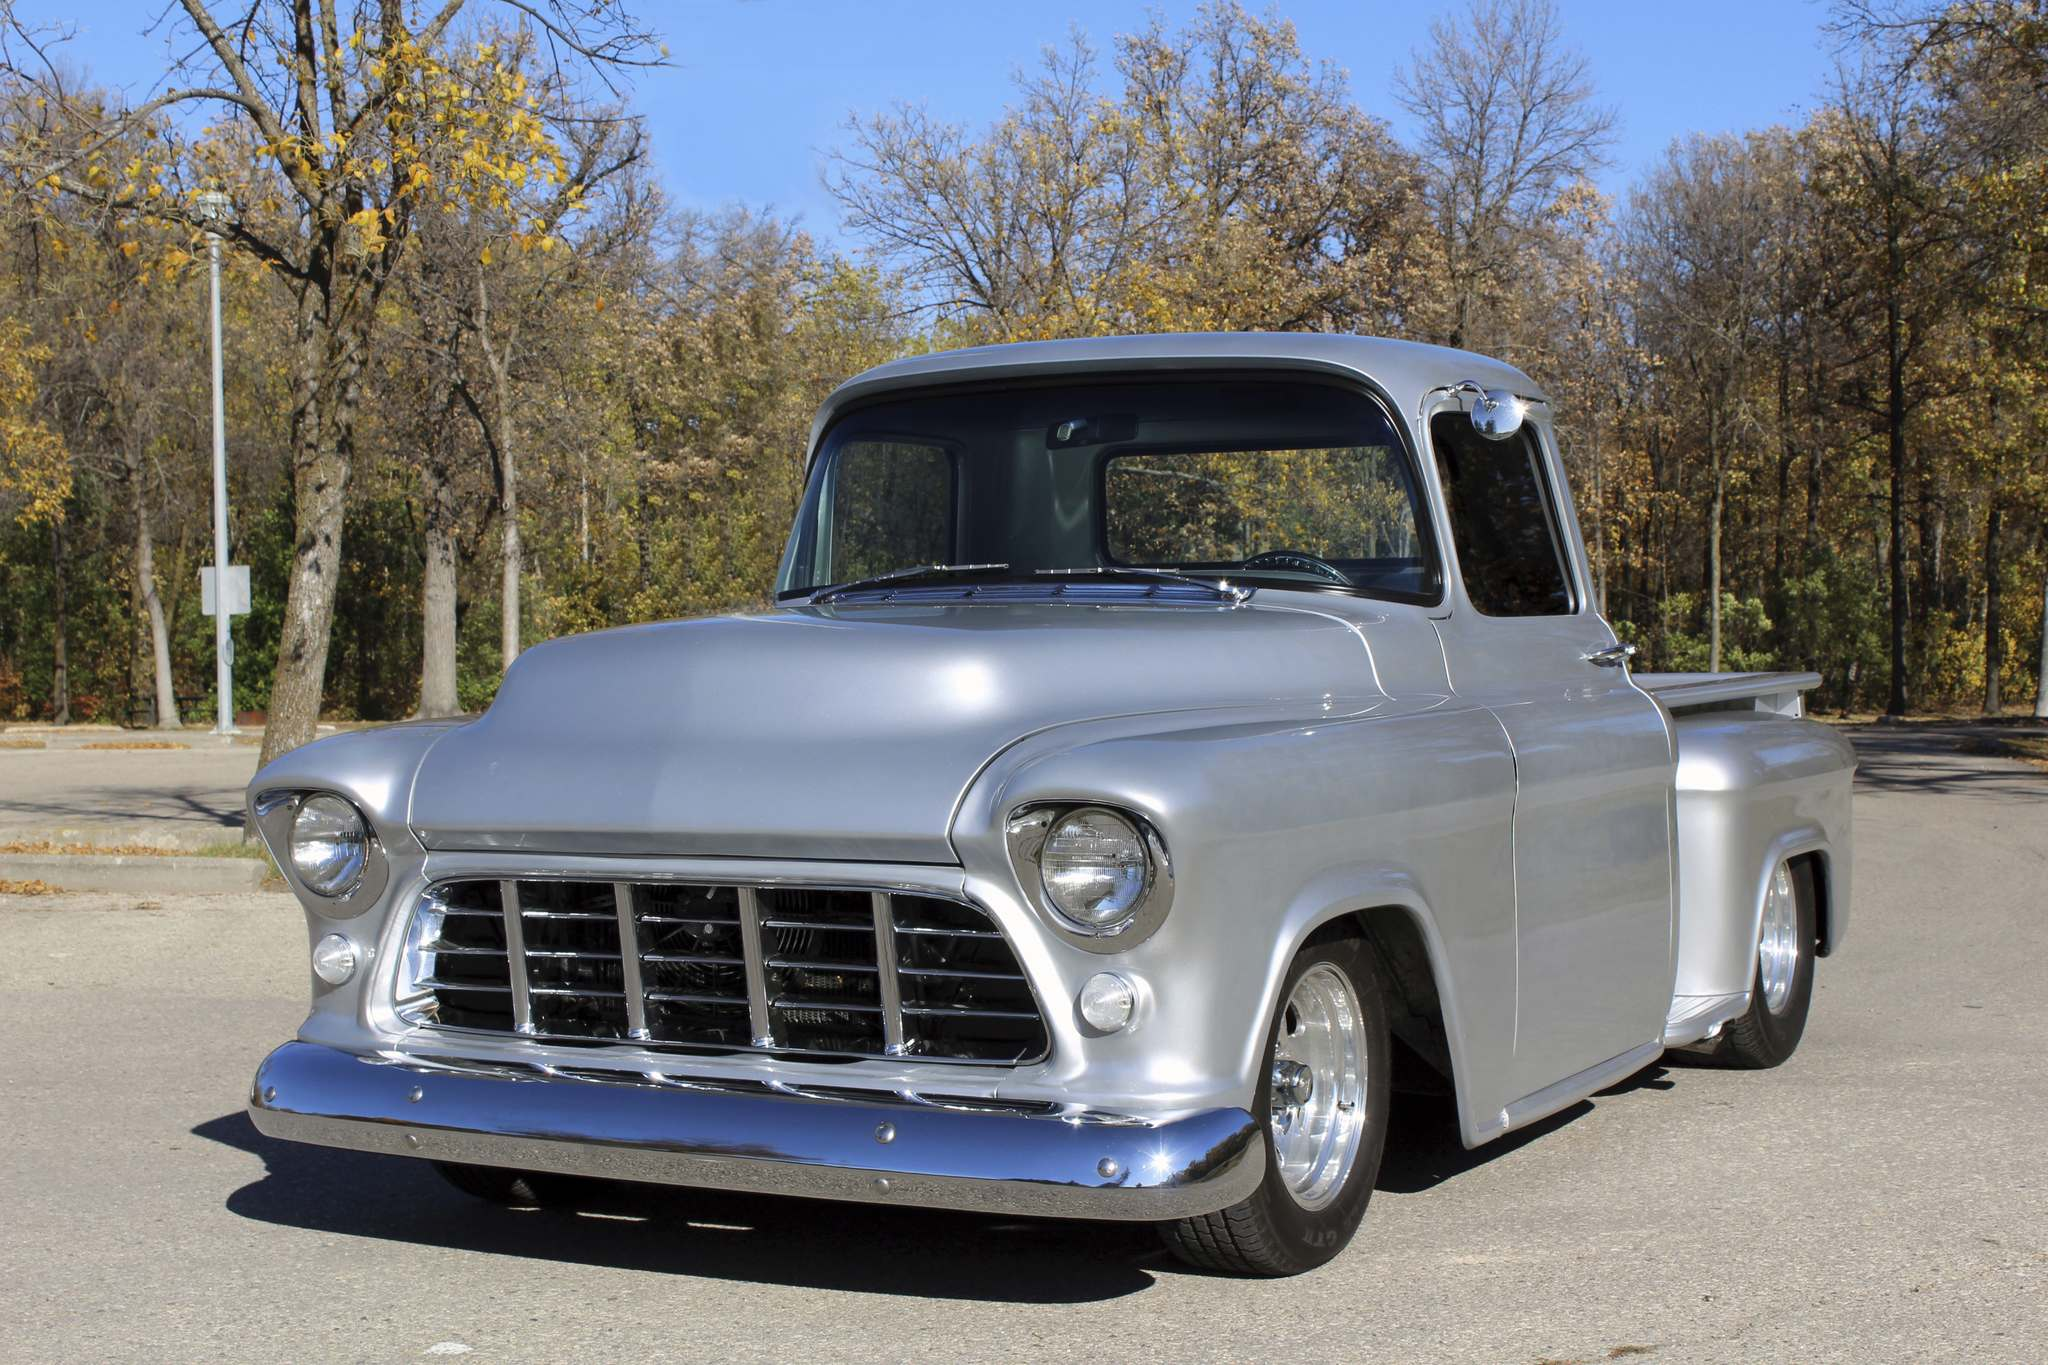 Photos by Larry D'Argis / Winnipeg Free PressDan Lemoine has owned his 1956 Chevrolet since the early 1990s, and after six years of refining the vehicle, it became a great summer driver.